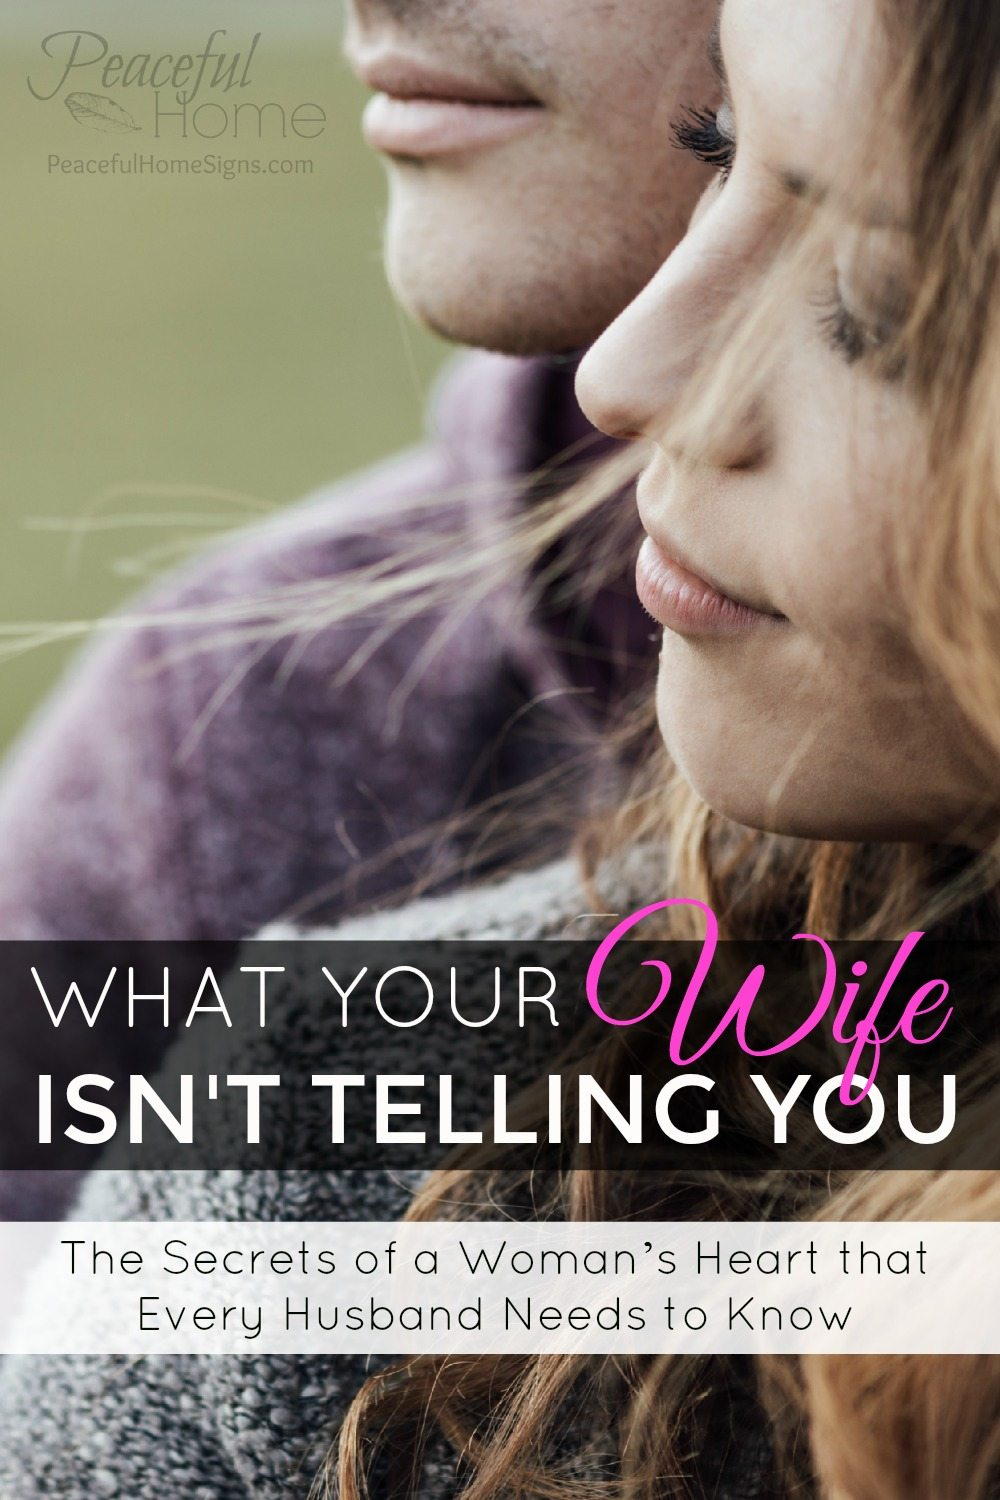 What your wife isn't telling you: The secrets of a woman's heart every husband needs to know | Christian Marriage Advice for Husbands | How to Love Your Wife | Christian Marriage | Love your wife well | Husbands love your wives | Christian Advice for Restoring Relationships | Healing Christian Marriage Christian Wives and Sex, What wives need from their husbands | Biblical Approach to Marriage | Sacrificial Love in Marriage | Mutual Submission in Marriage